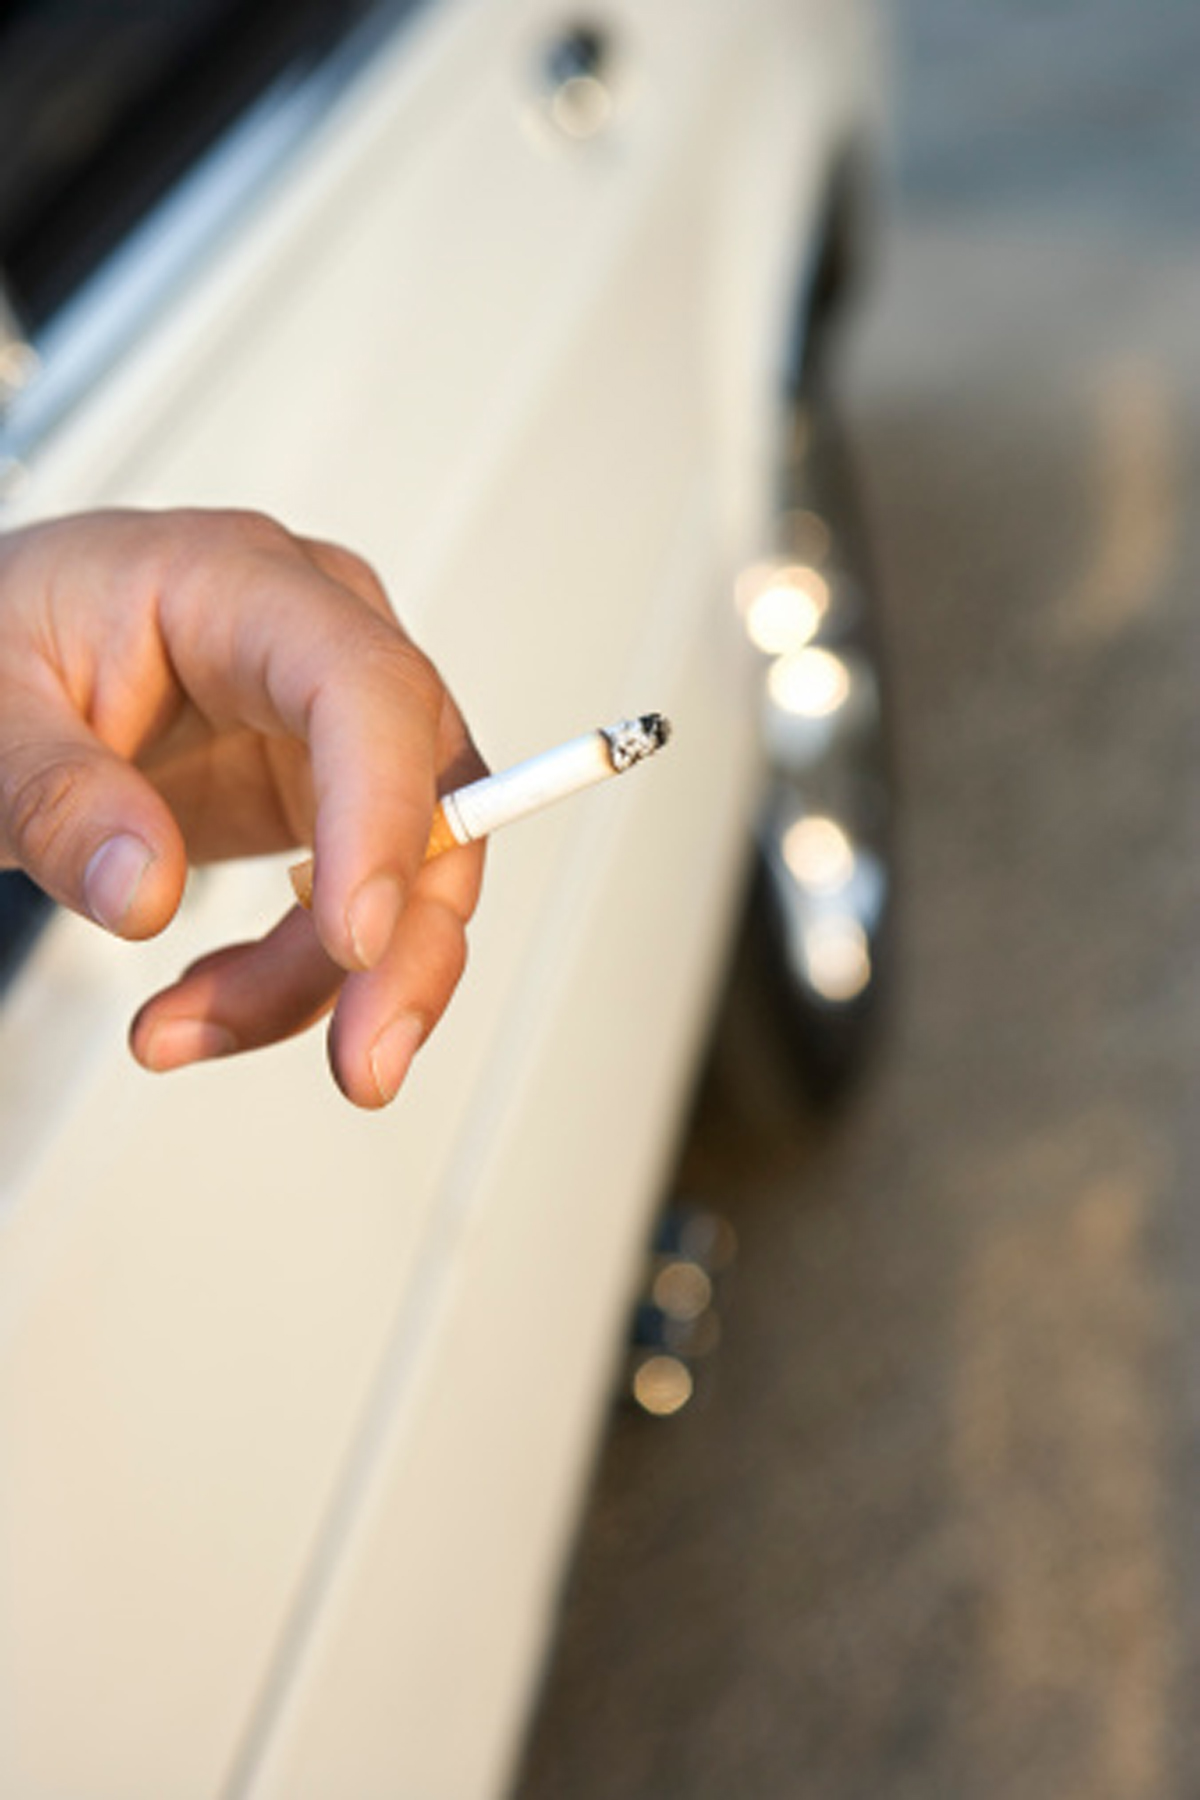 Sussex MPs vote in favour of smoking ban in cars with children